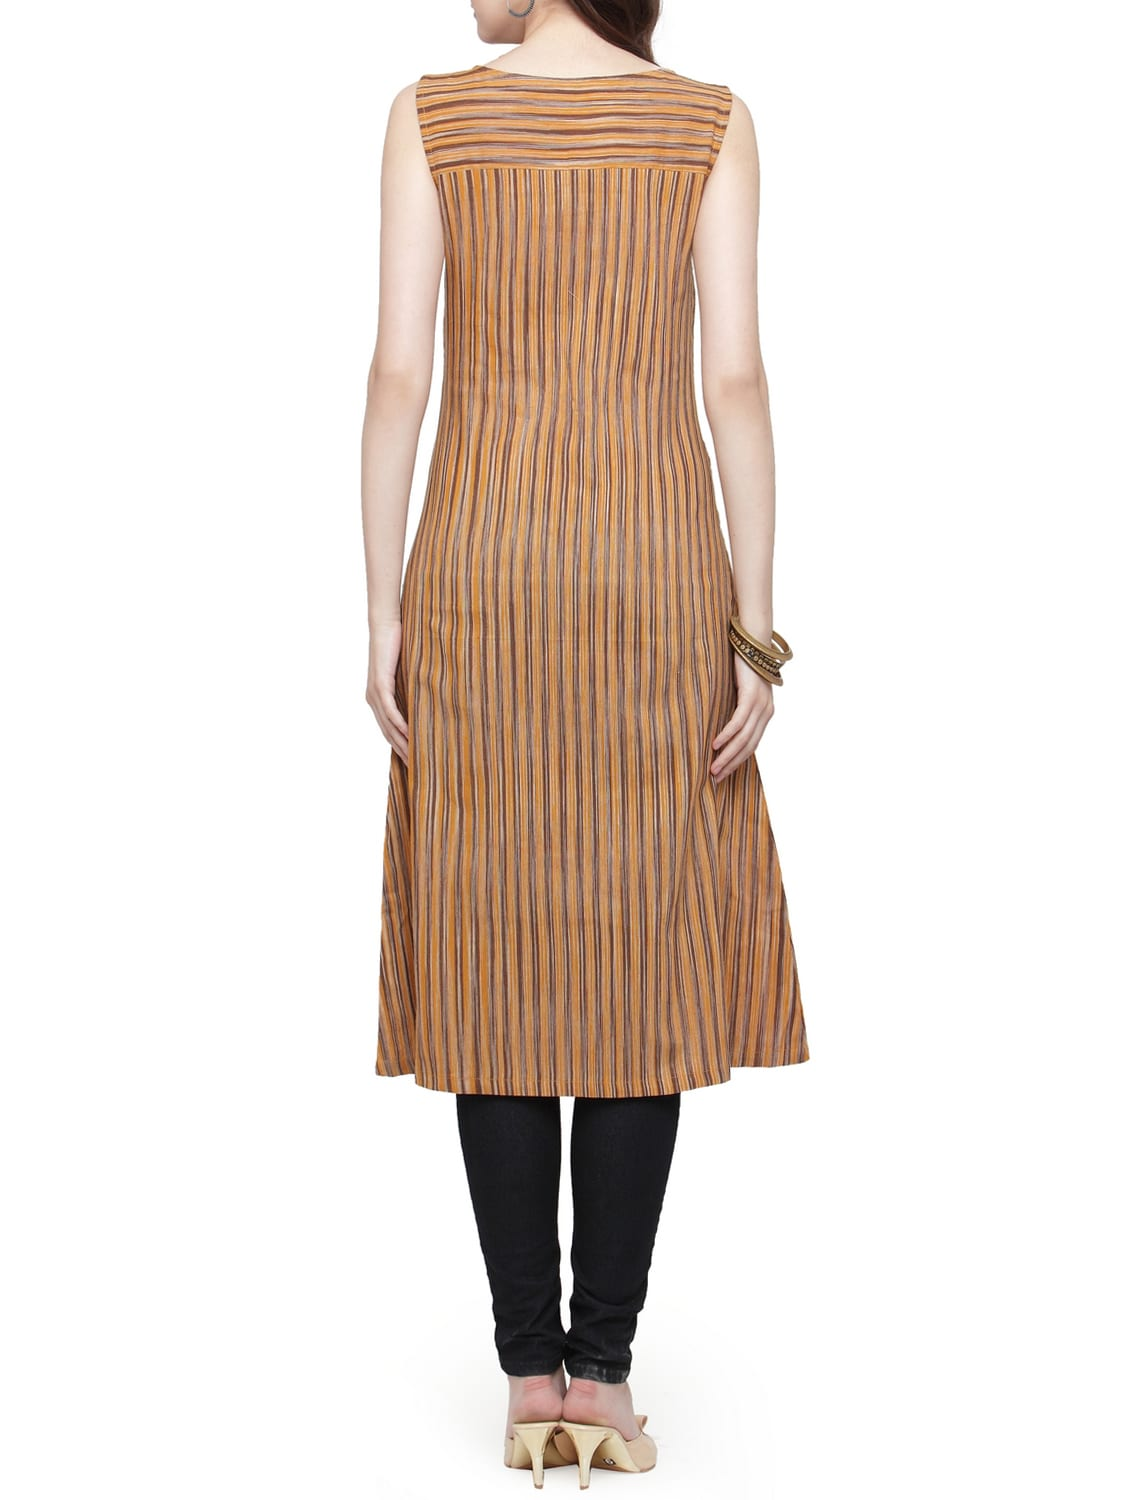 bccaf5c510a Buy Stripes A-line Kurta for Women from Jompers for ₹500 at 41% off ...